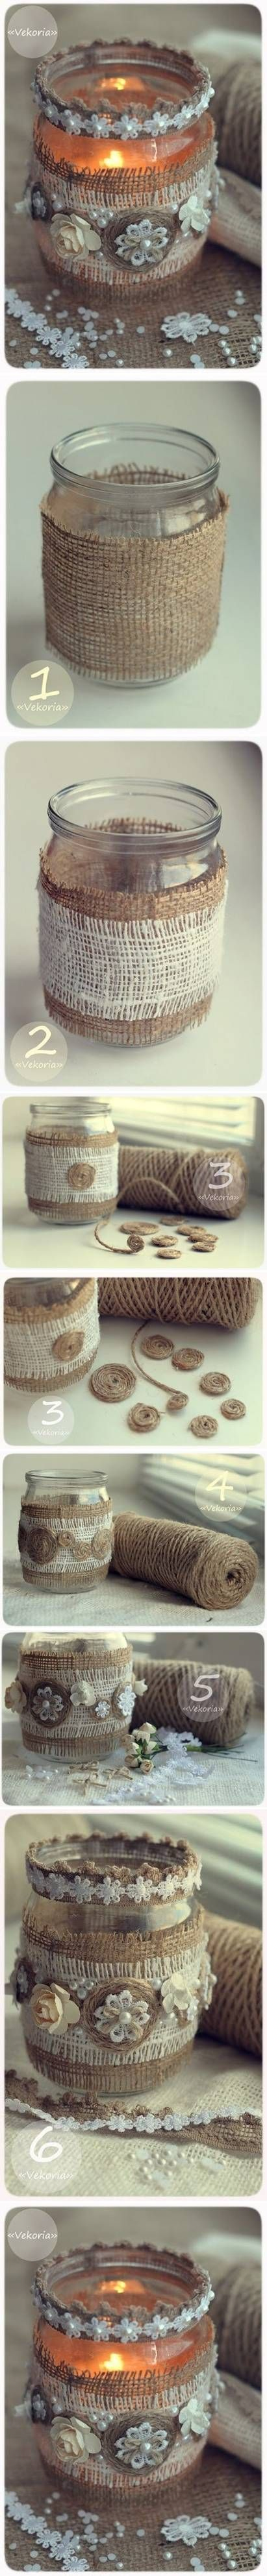 40 Extremely Clever DIY Candle Holders Projects For Your Home homesthetics decor (5)